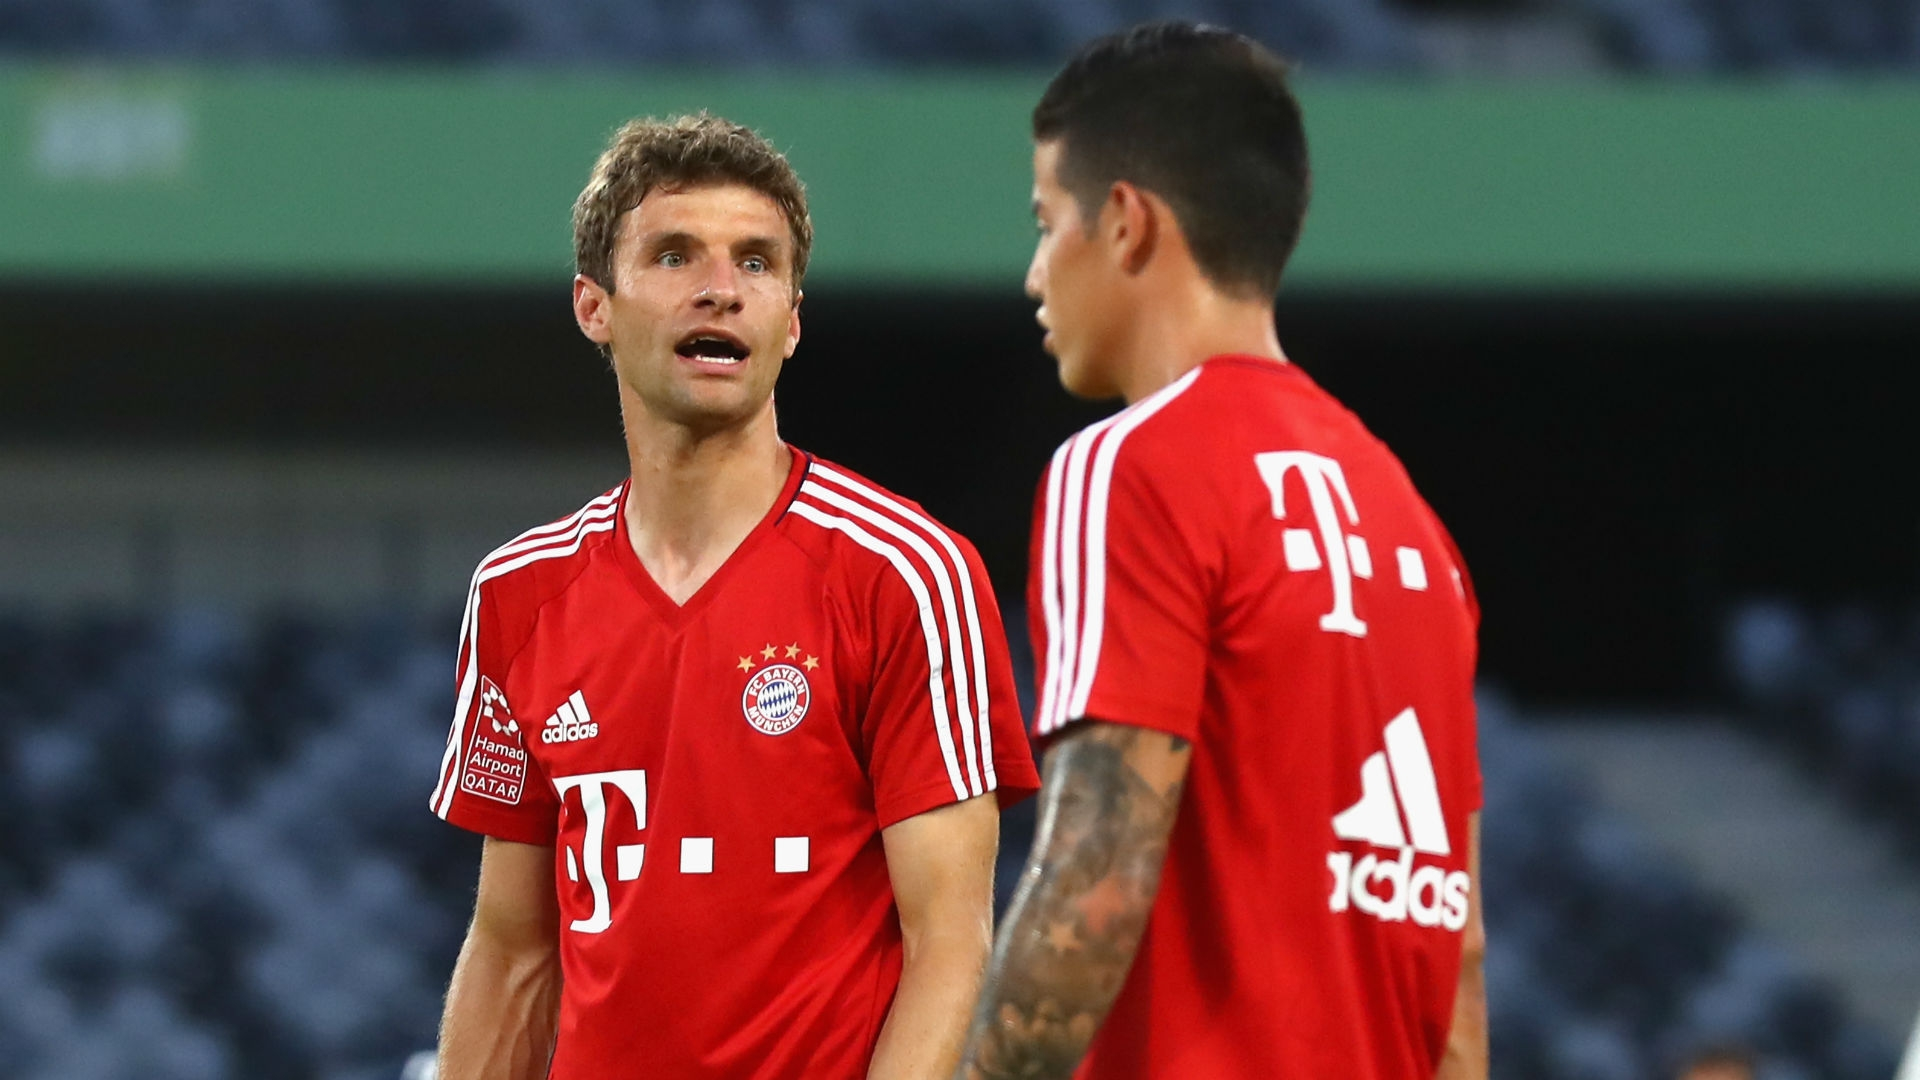 Thomas Muller talked about the recent additions to Bayern Munich's squad and says he does not feel his role in the team is under threat.